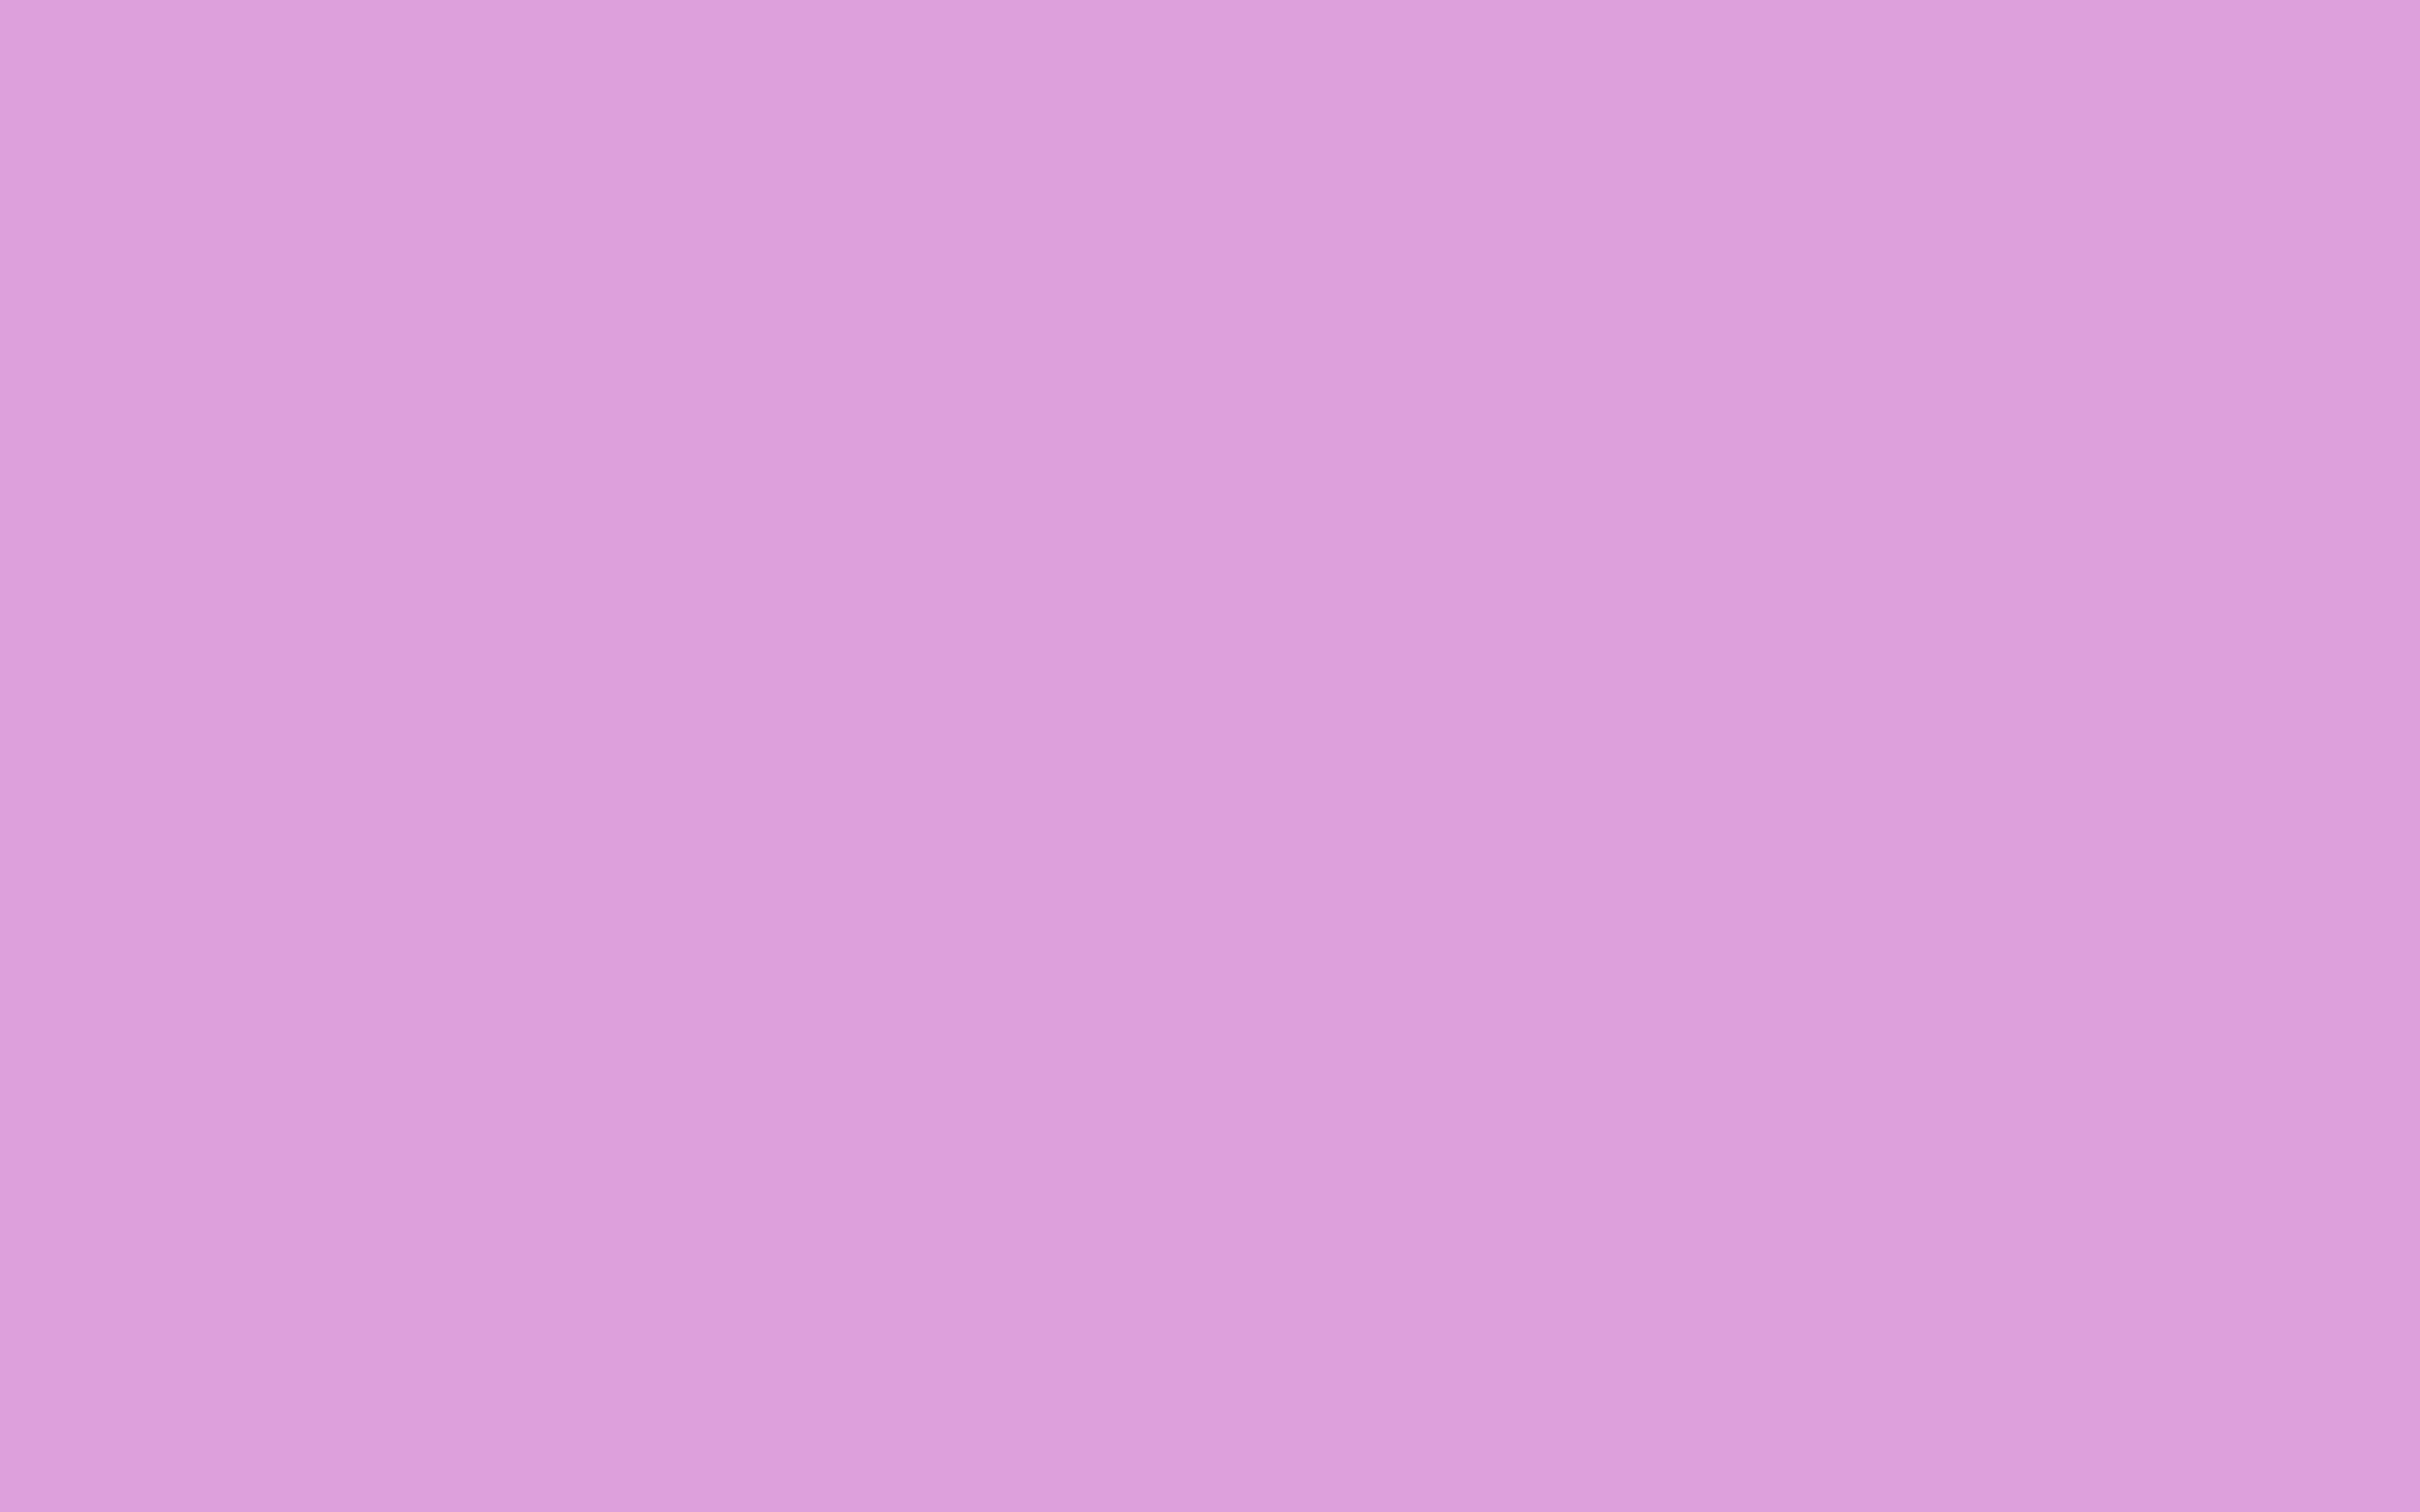 2880x1800 Plum Web Solid Color Background 2880x1800